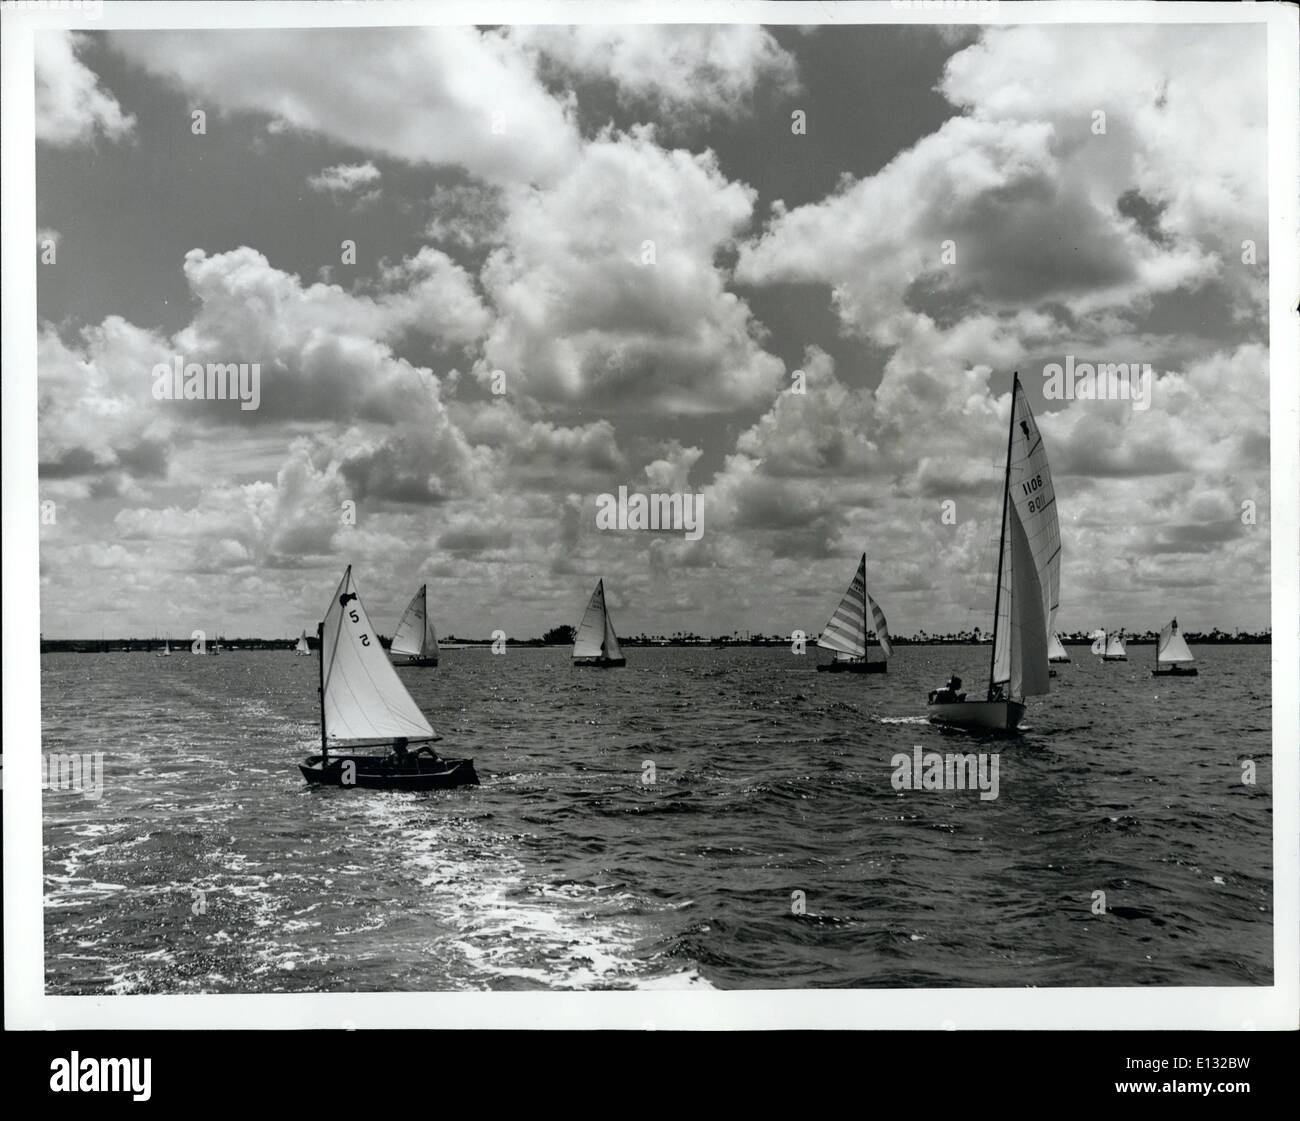 Feb. 26, 2012 - Labor Day festivities highlight Florida's calendar of events for September, and the sailing Regatta in Sarasota - Stock Image